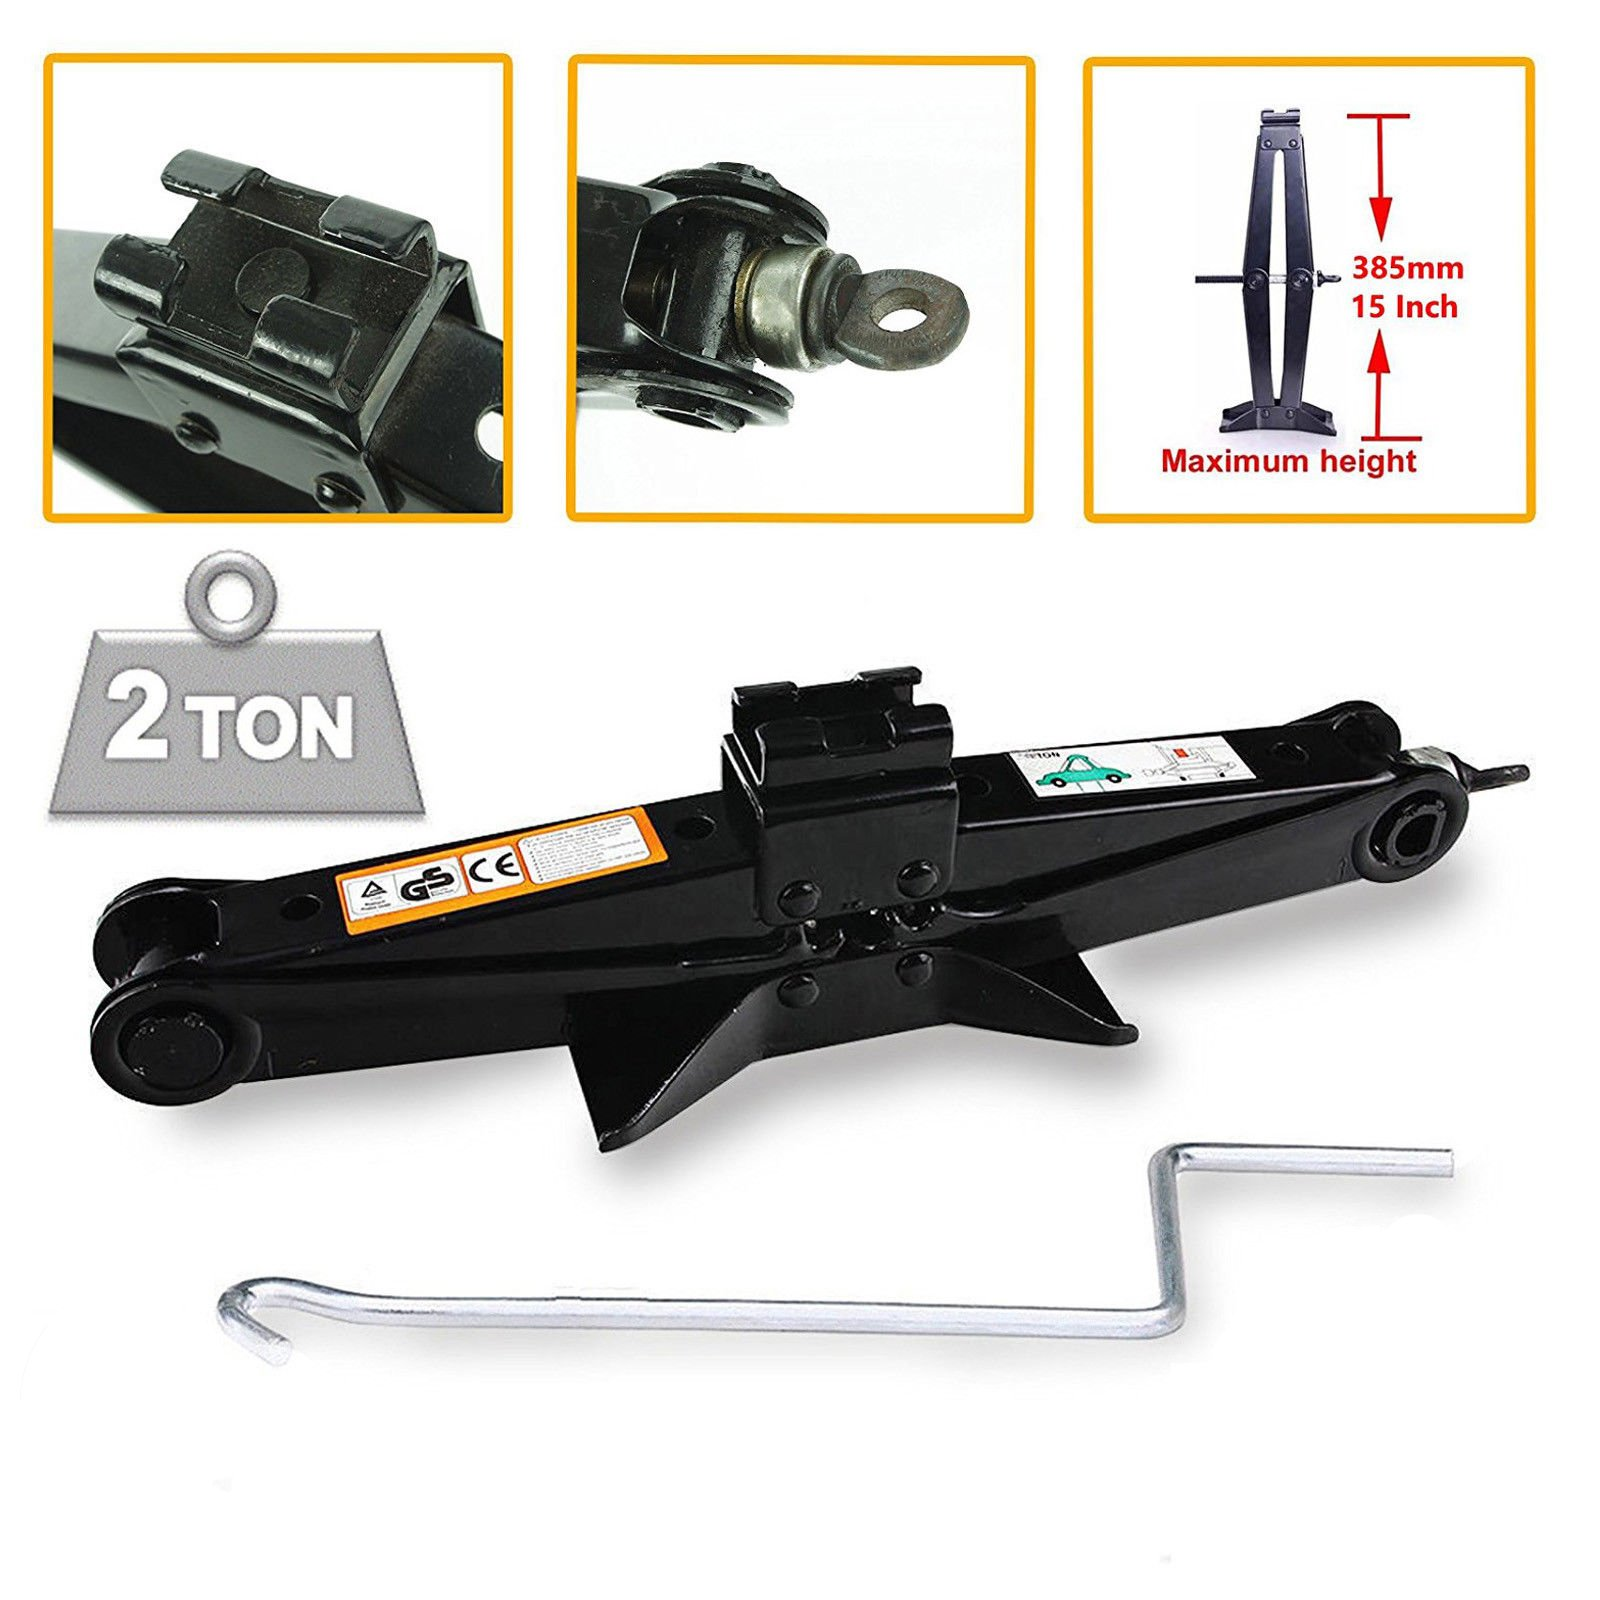 Scissor Jack 2 Tonne For Car Van Travel Emergence Mechanical Lifting Lift Tool Portable With Crank Speed Handle